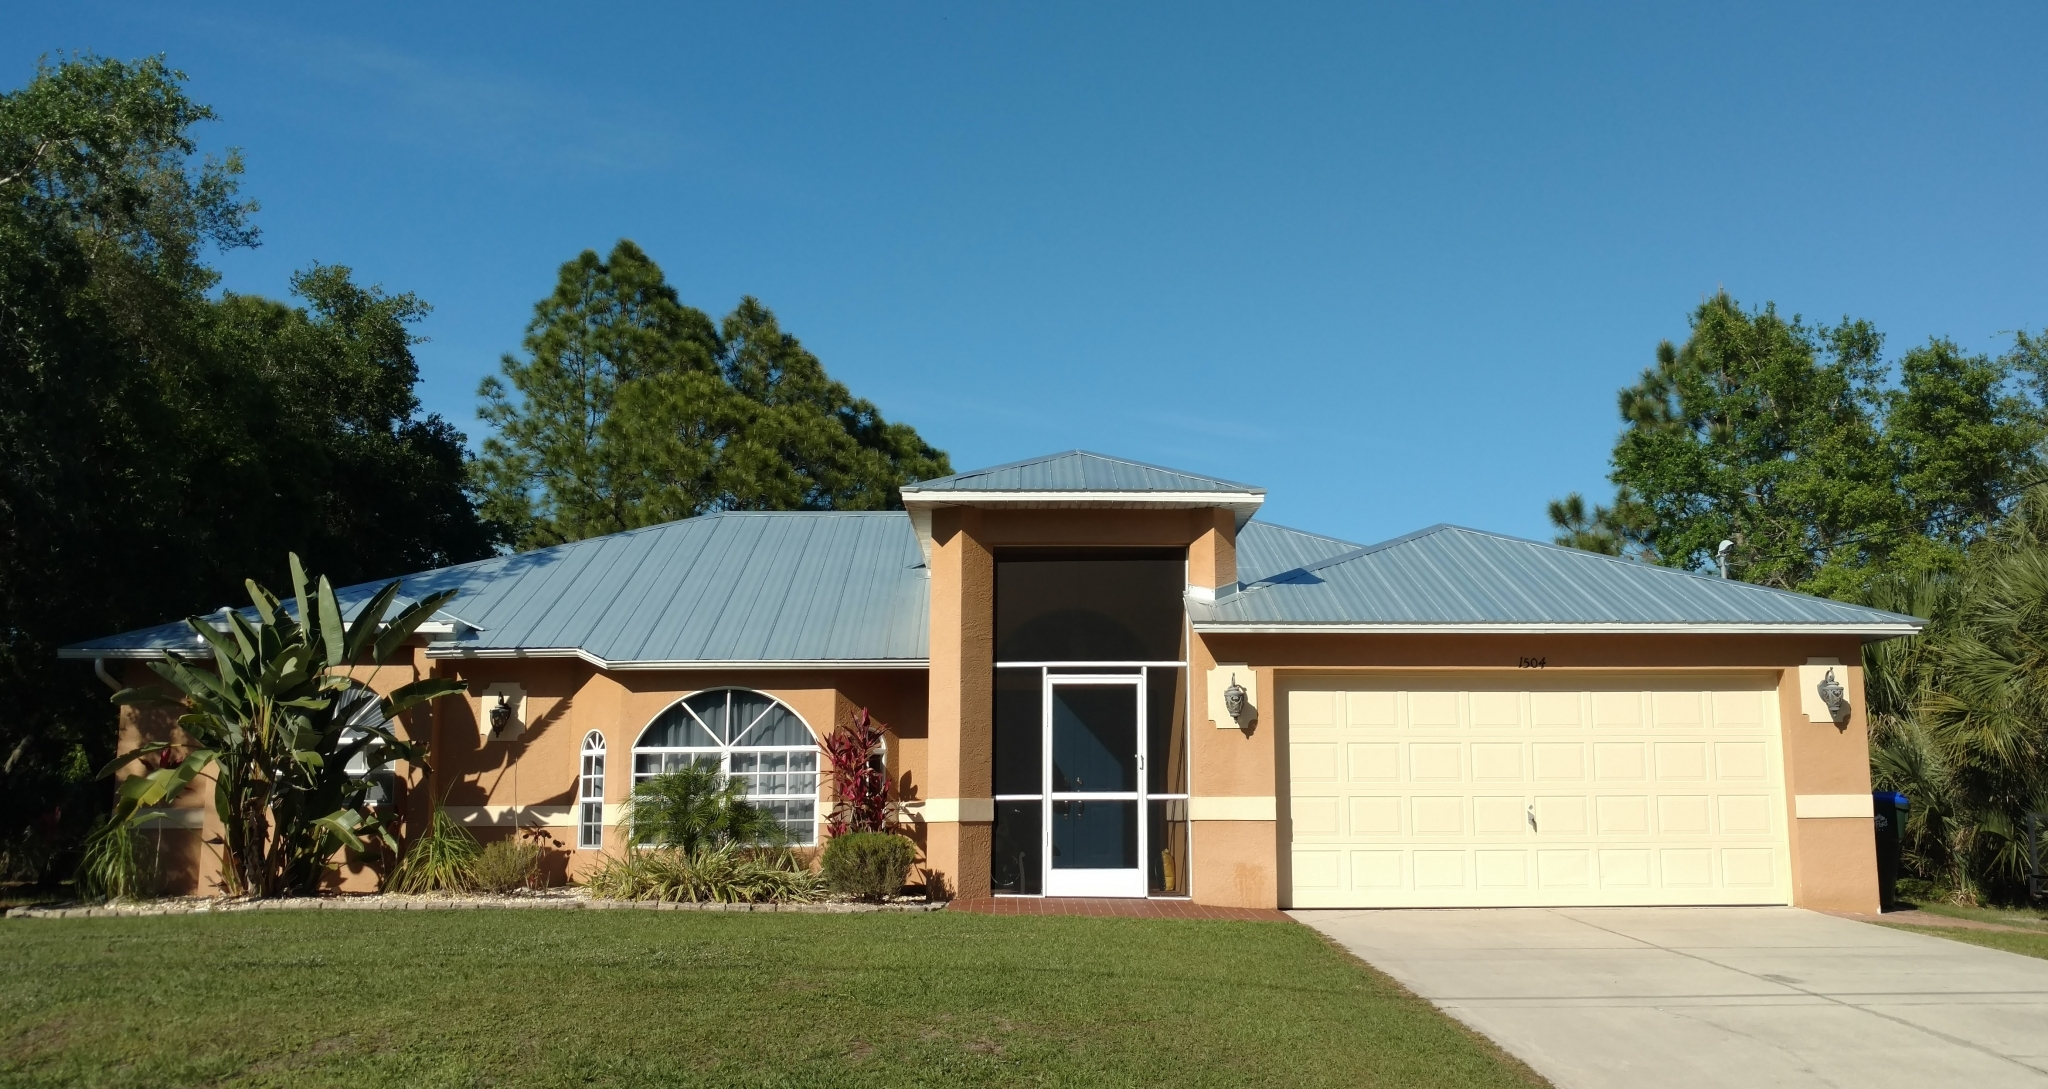 Reroof in Cape Coral, FL